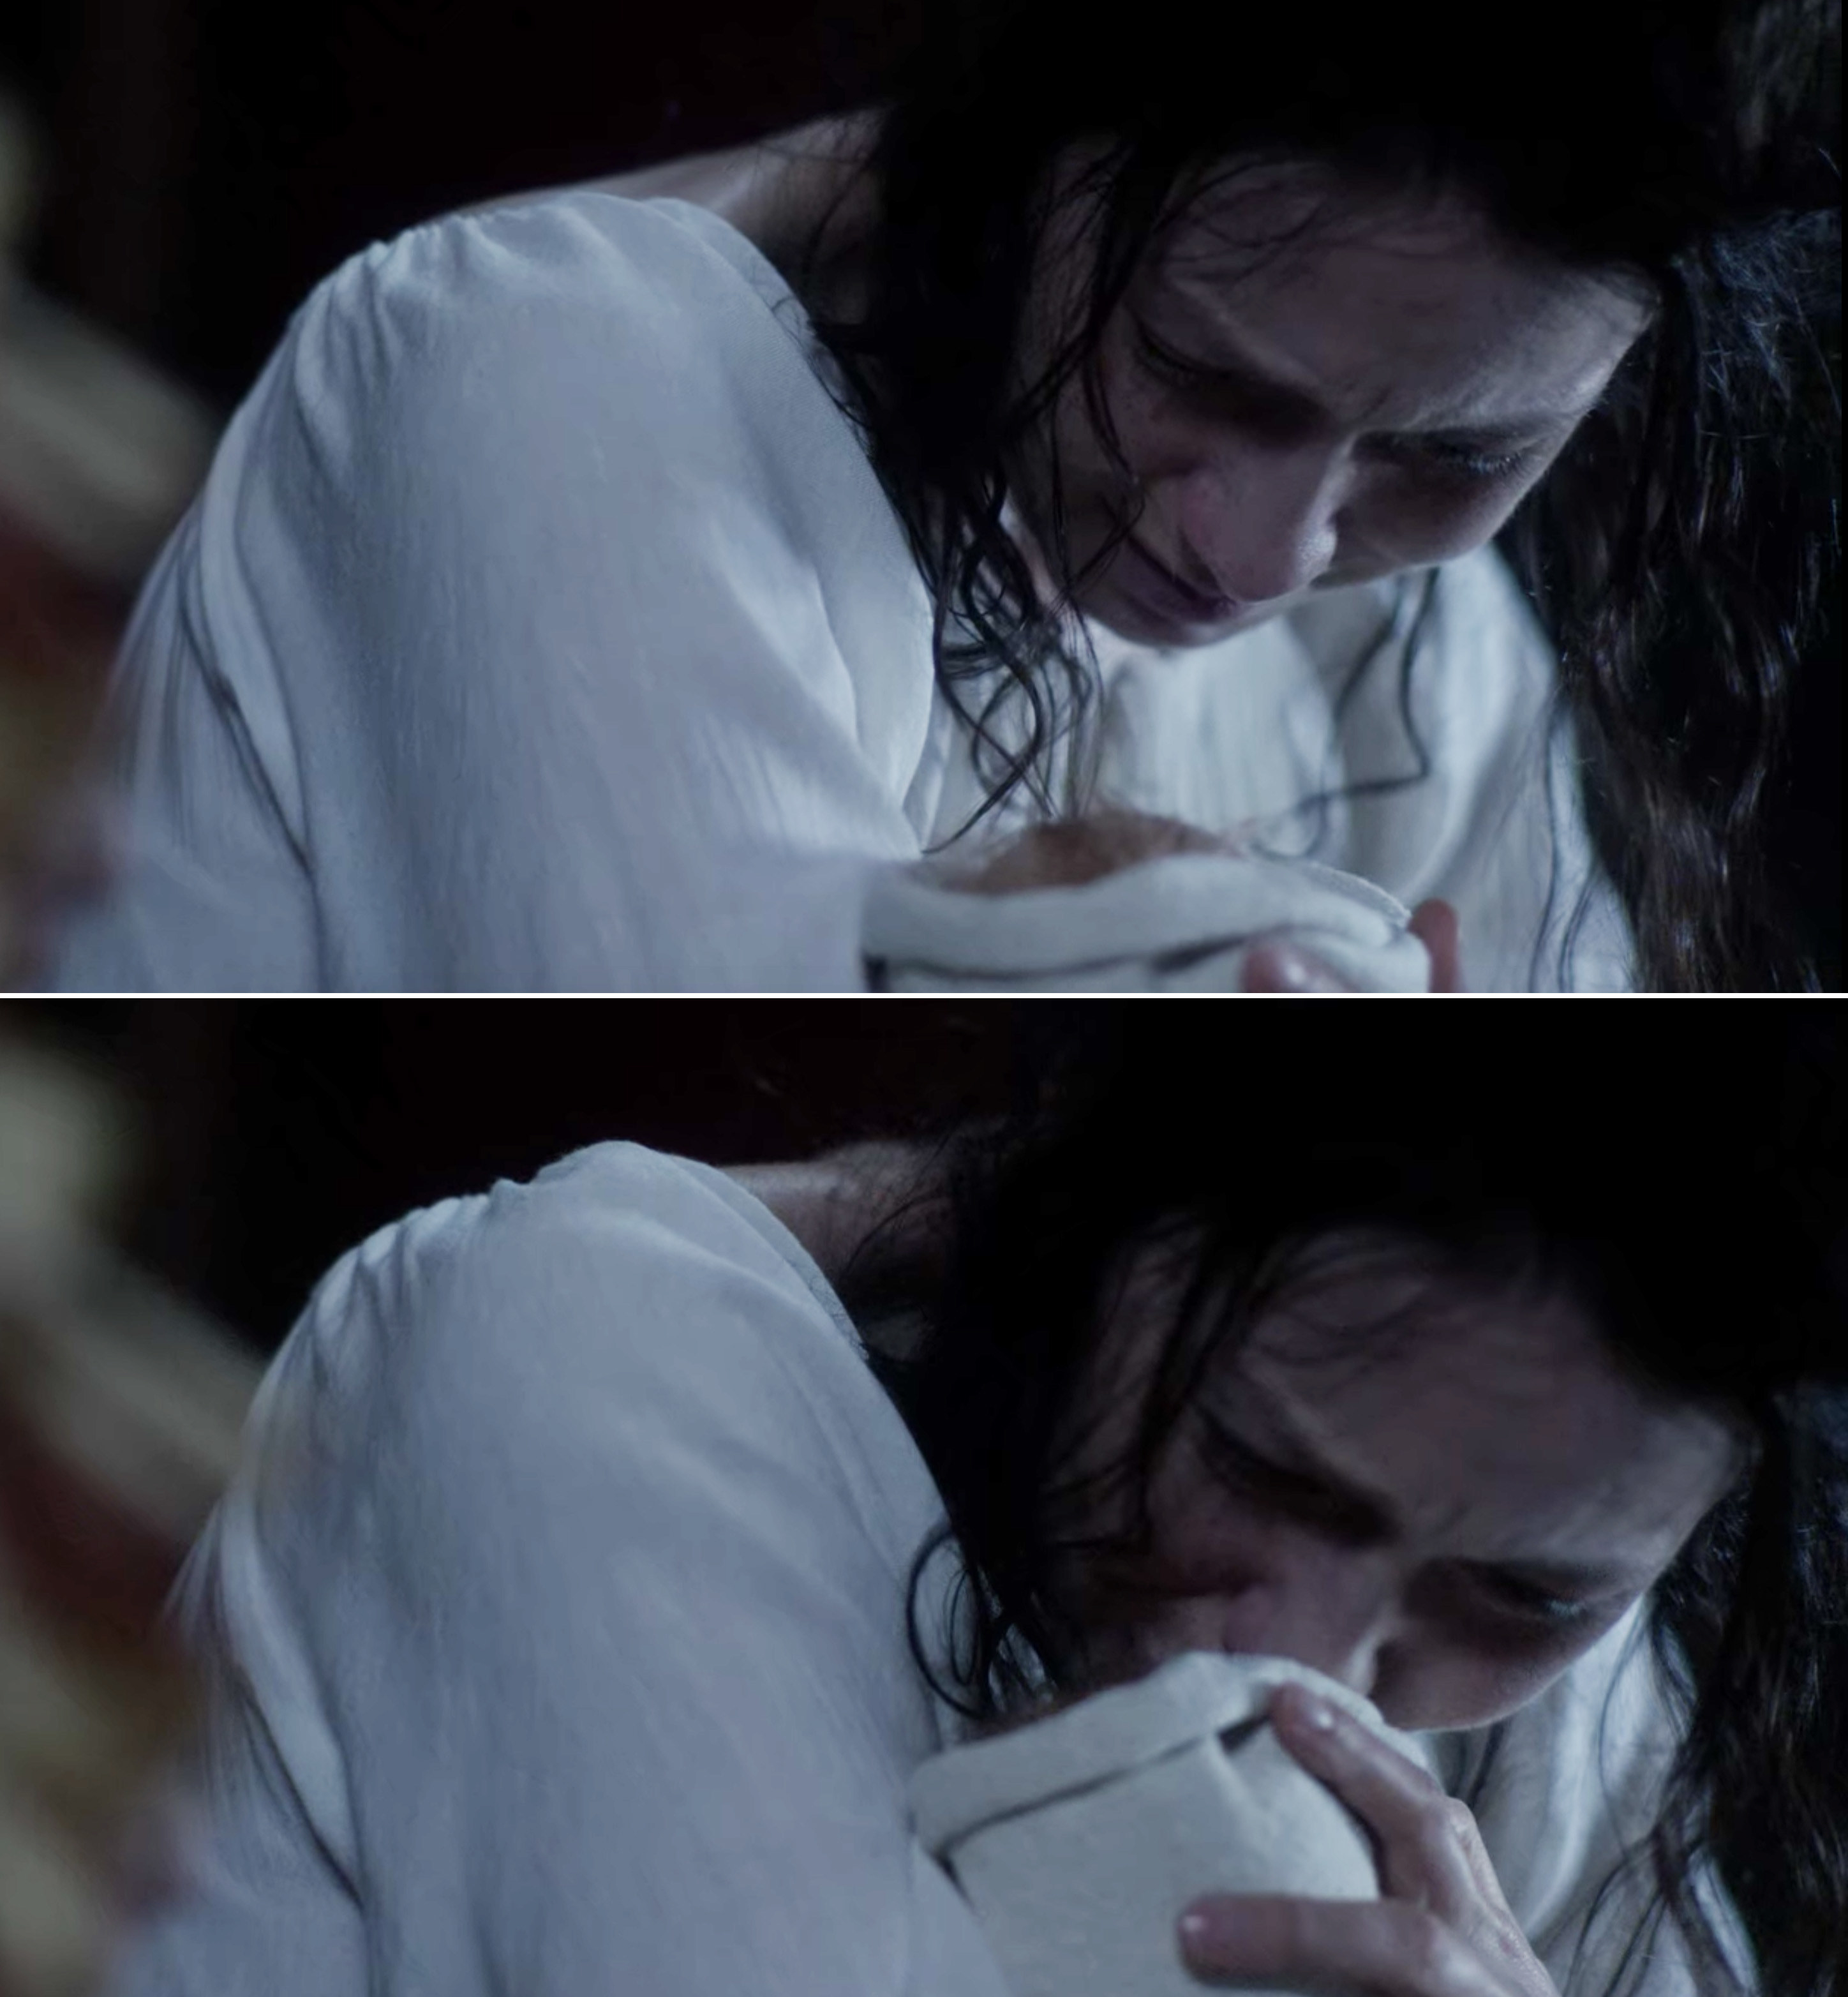 Claire crying and kissing her newborn baby